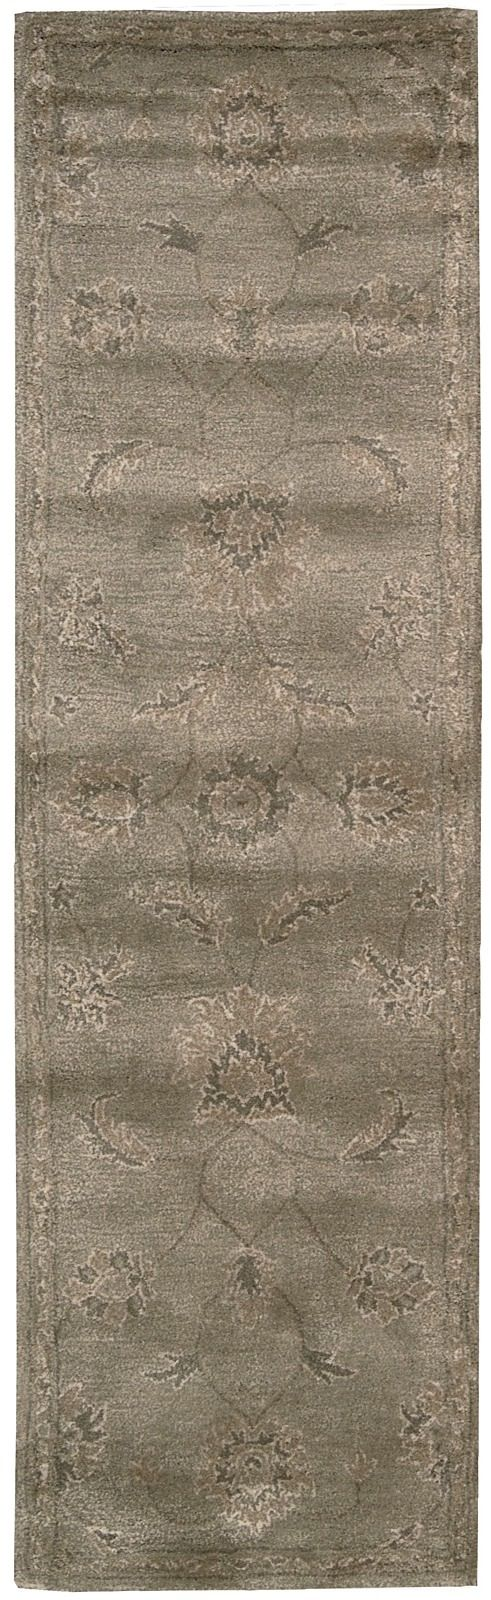 nourison superlative transitional area rug collection